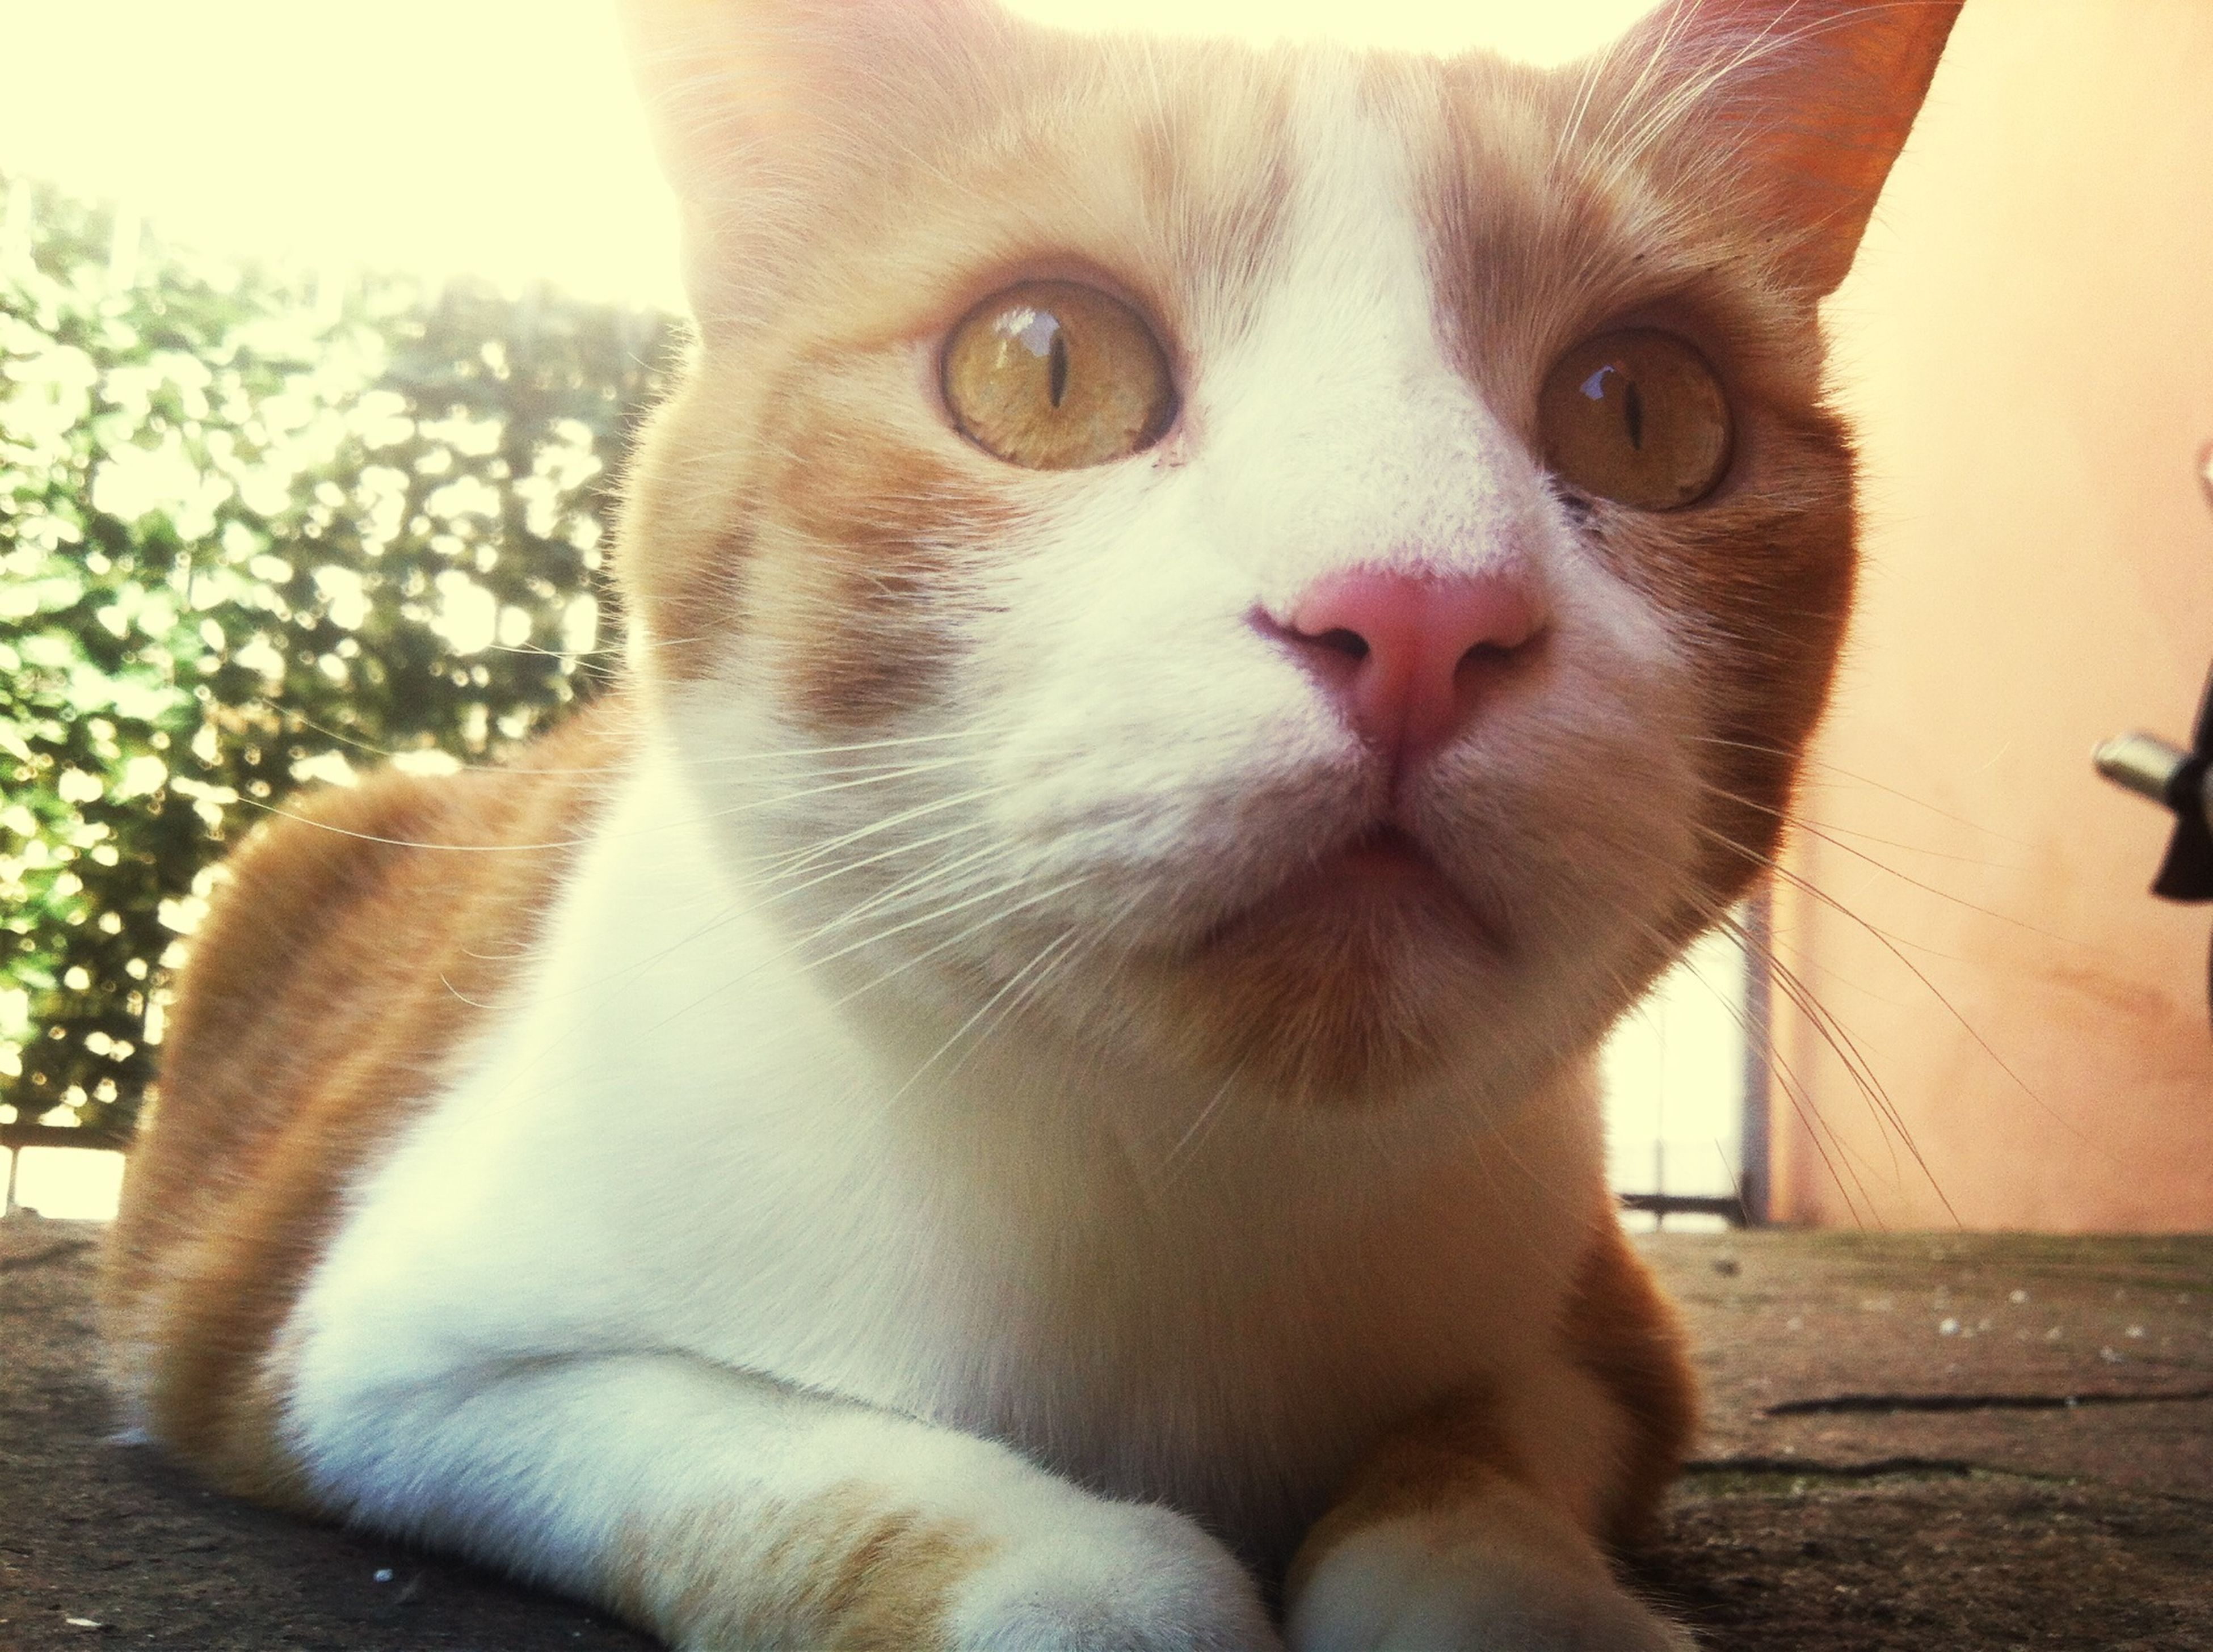 domestic cat, pets, one animal, domestic animals, cat, animal themes, mammal, feline, whisker, looking at camera, portrait, close-up, sitting, animal head, relaxation, indoors, no people, focus on foreground, front view